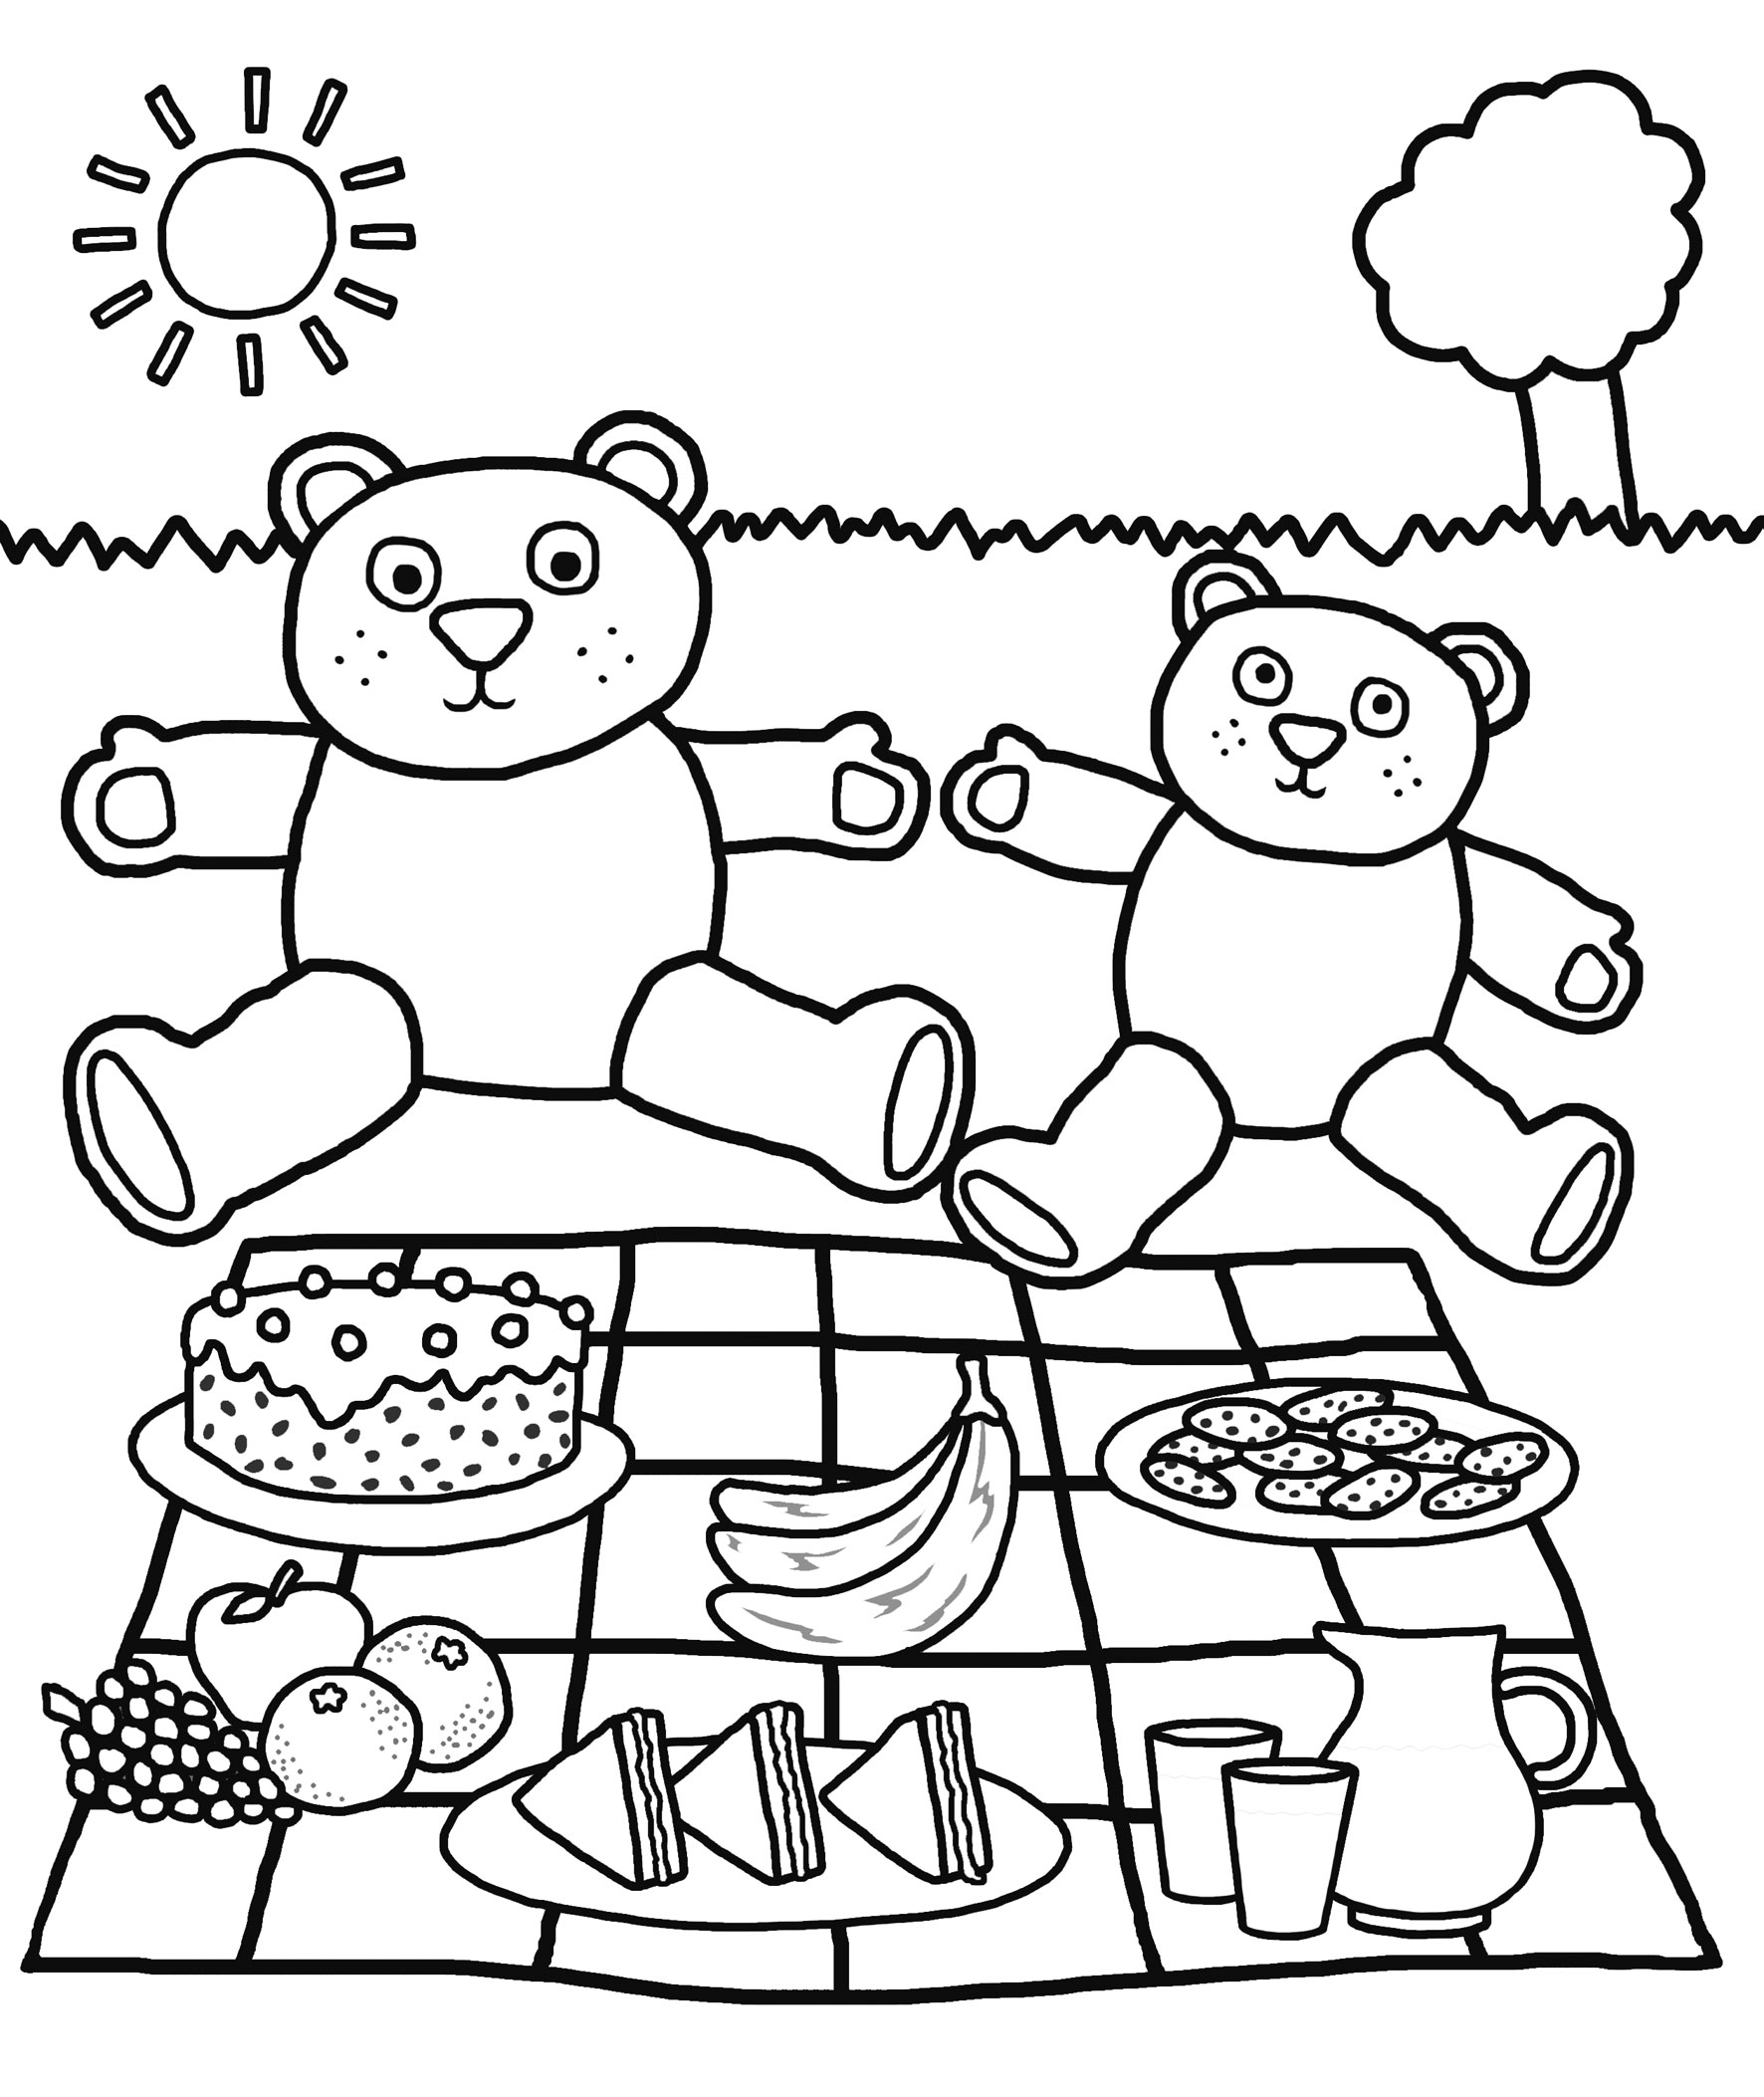 kindergarten colouring pages free printable kindergarten coloring pages for kids colouring kindergarten pages